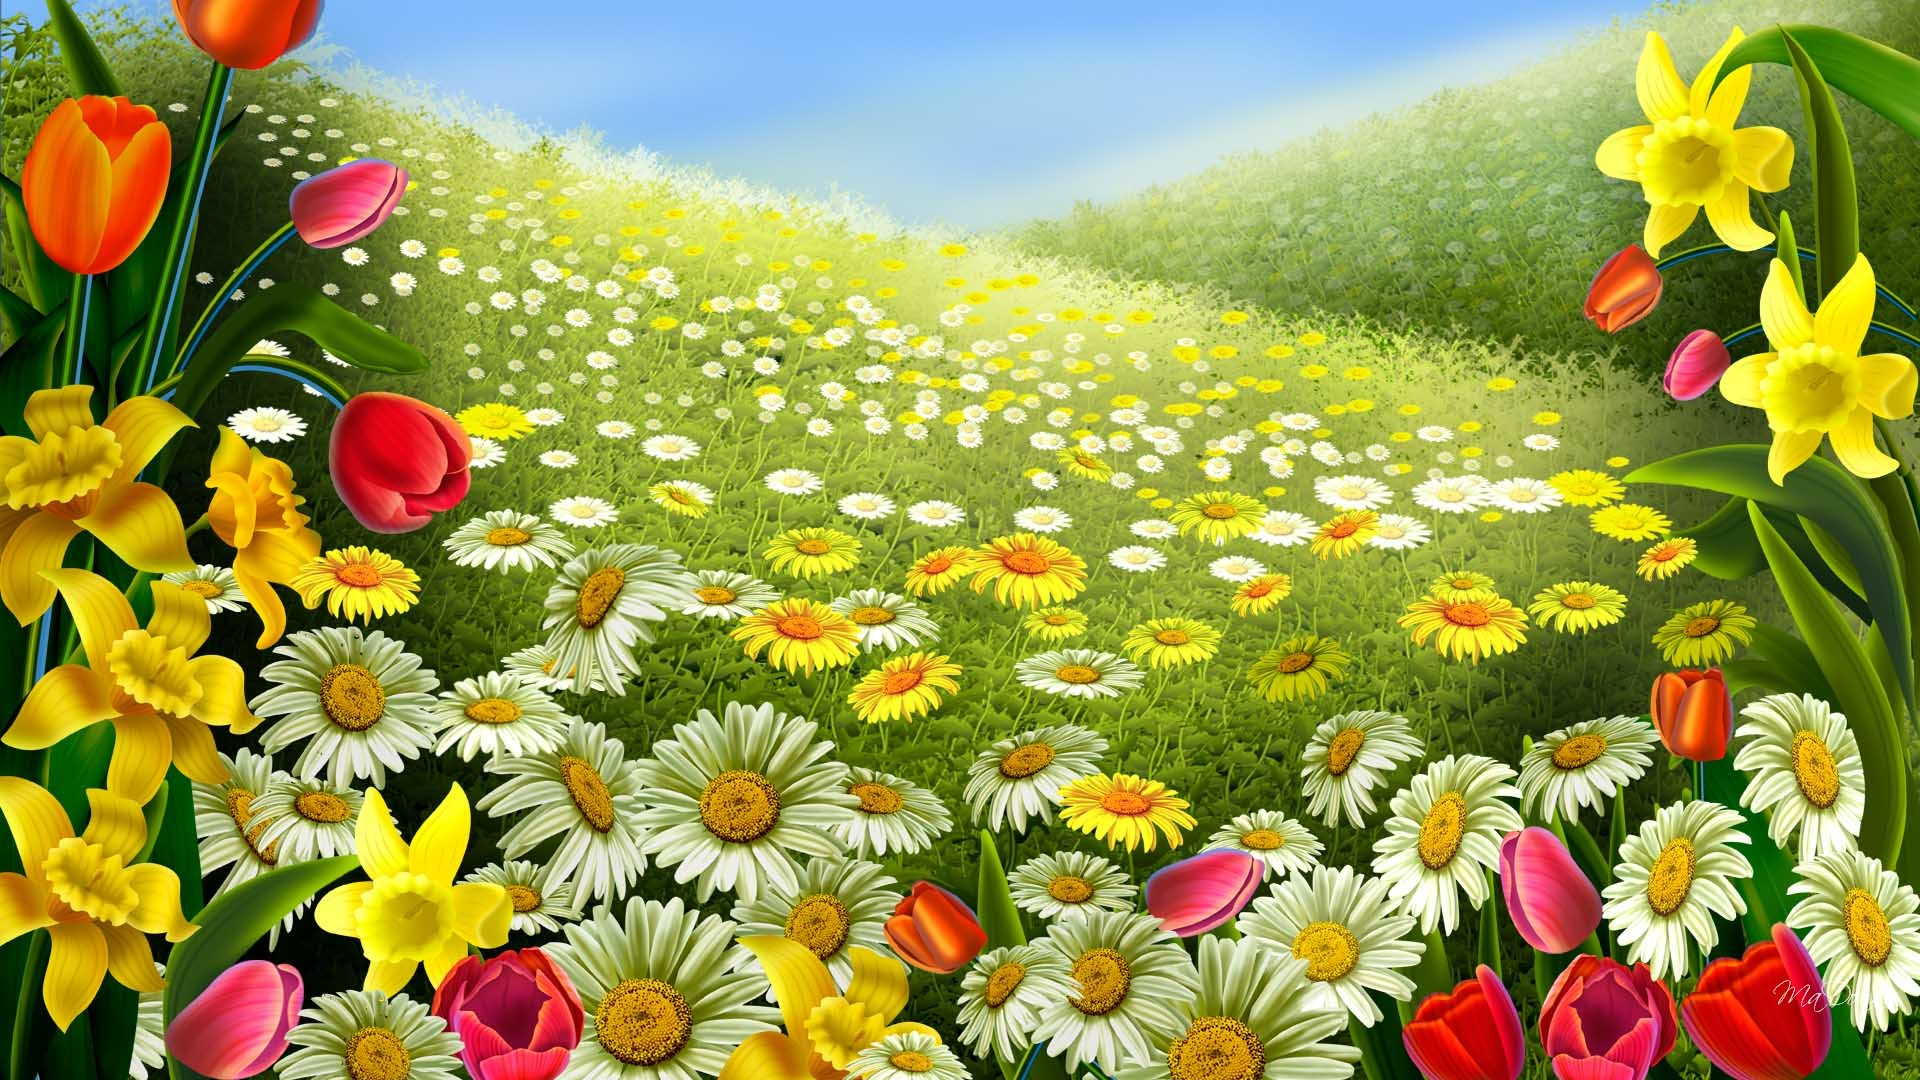 Wallpaper download of flowers - World S Top 100 Beautiful Flowers Images Wallpaper Photos Free Download